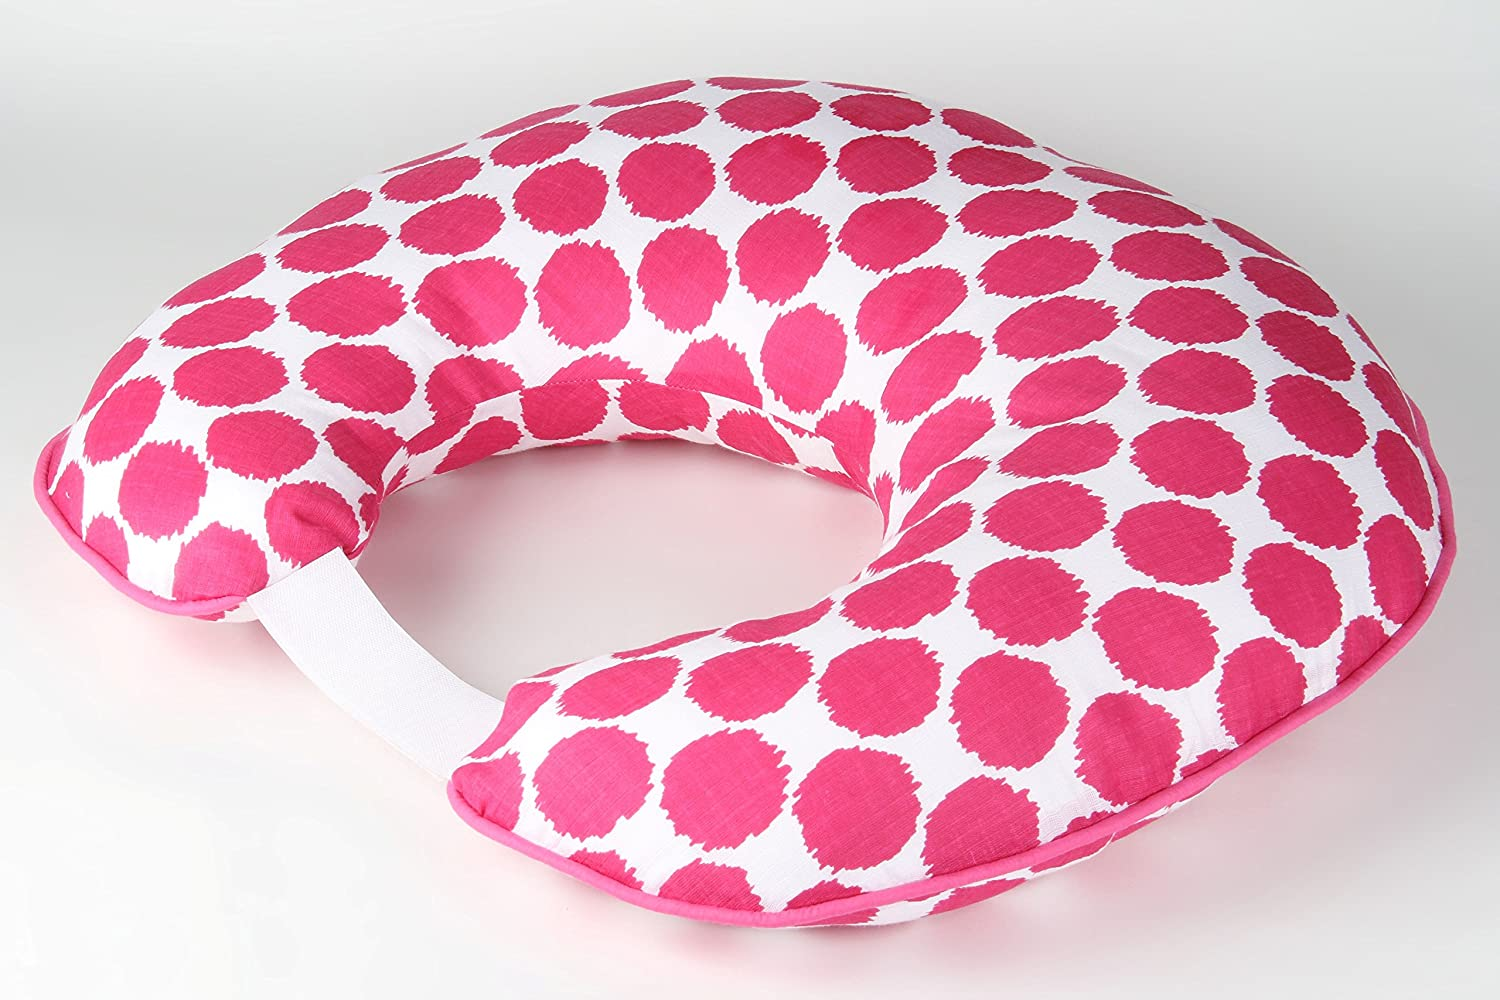 Superlatite Bacati Ikat Dots Clearance SALE Limited time Muslin Fabric Nursing Pillow Inser with Hugster